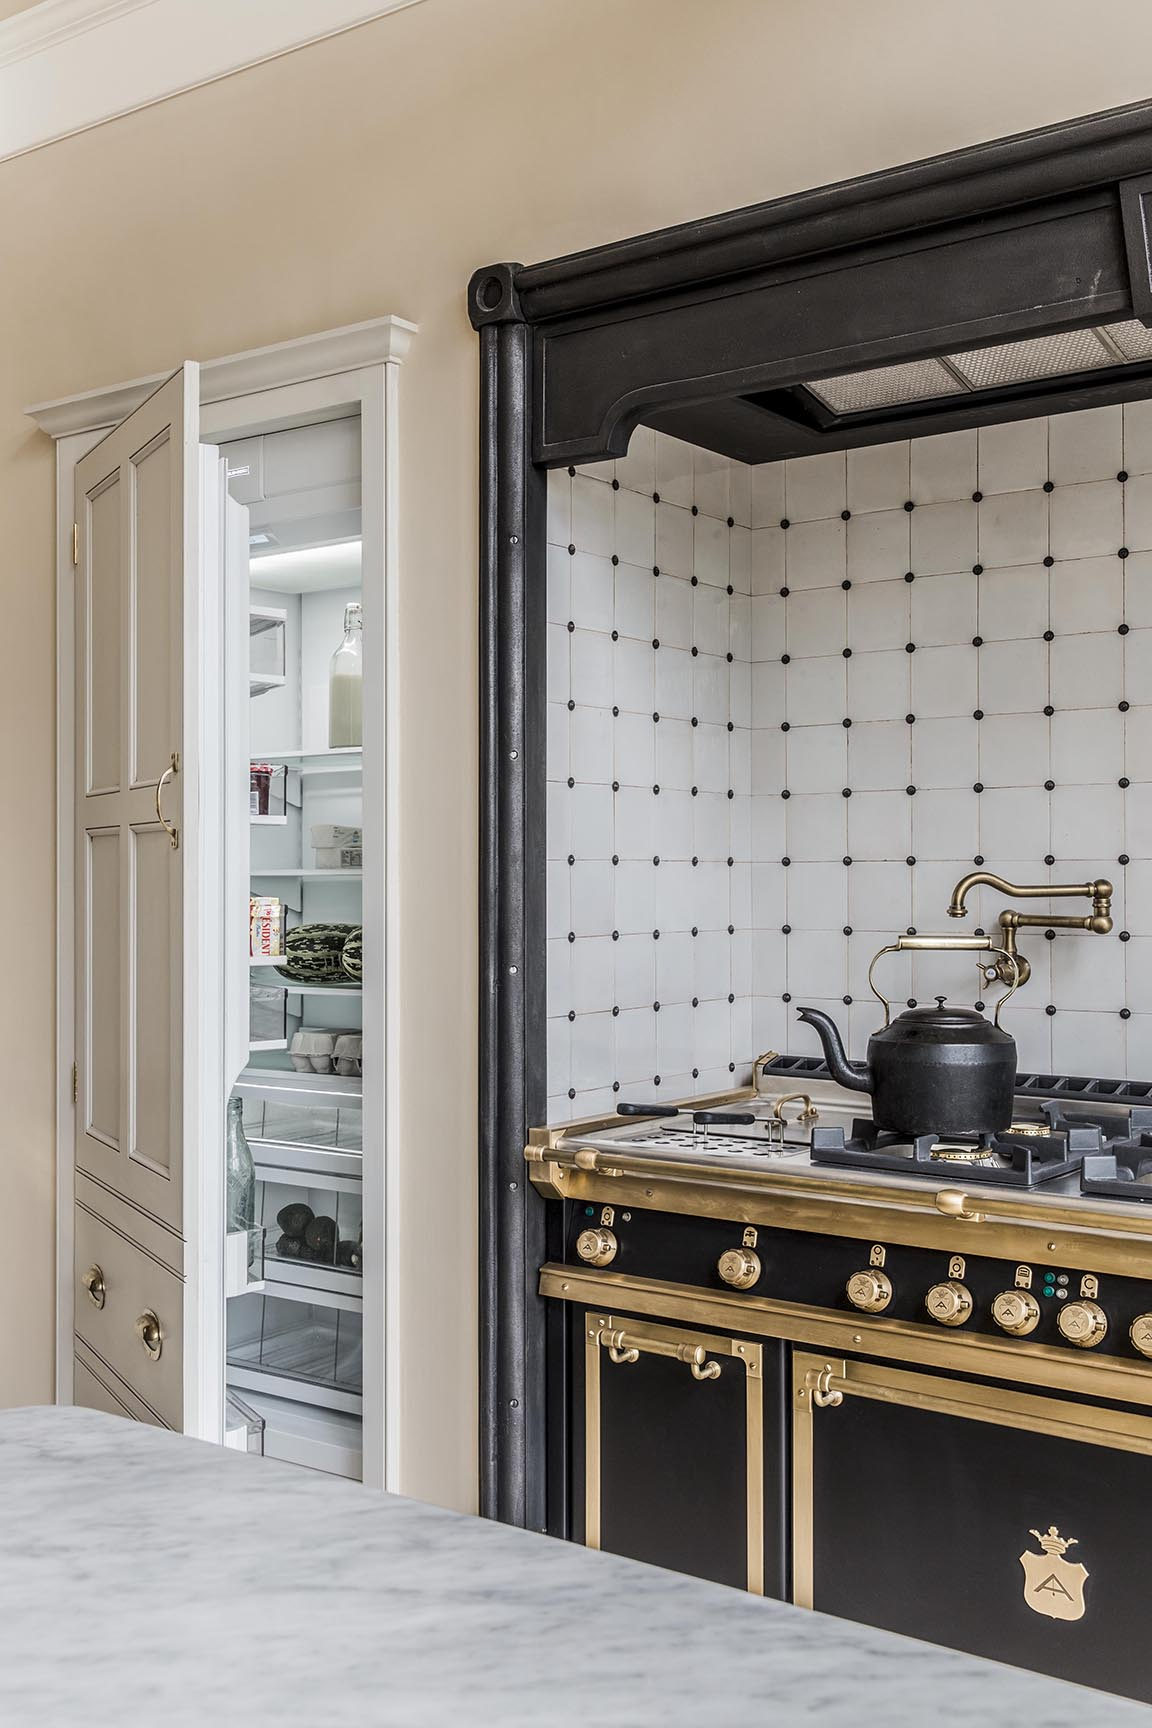 This recessed cupboard conceals a fridge. The other hides a microwave and pot storage.